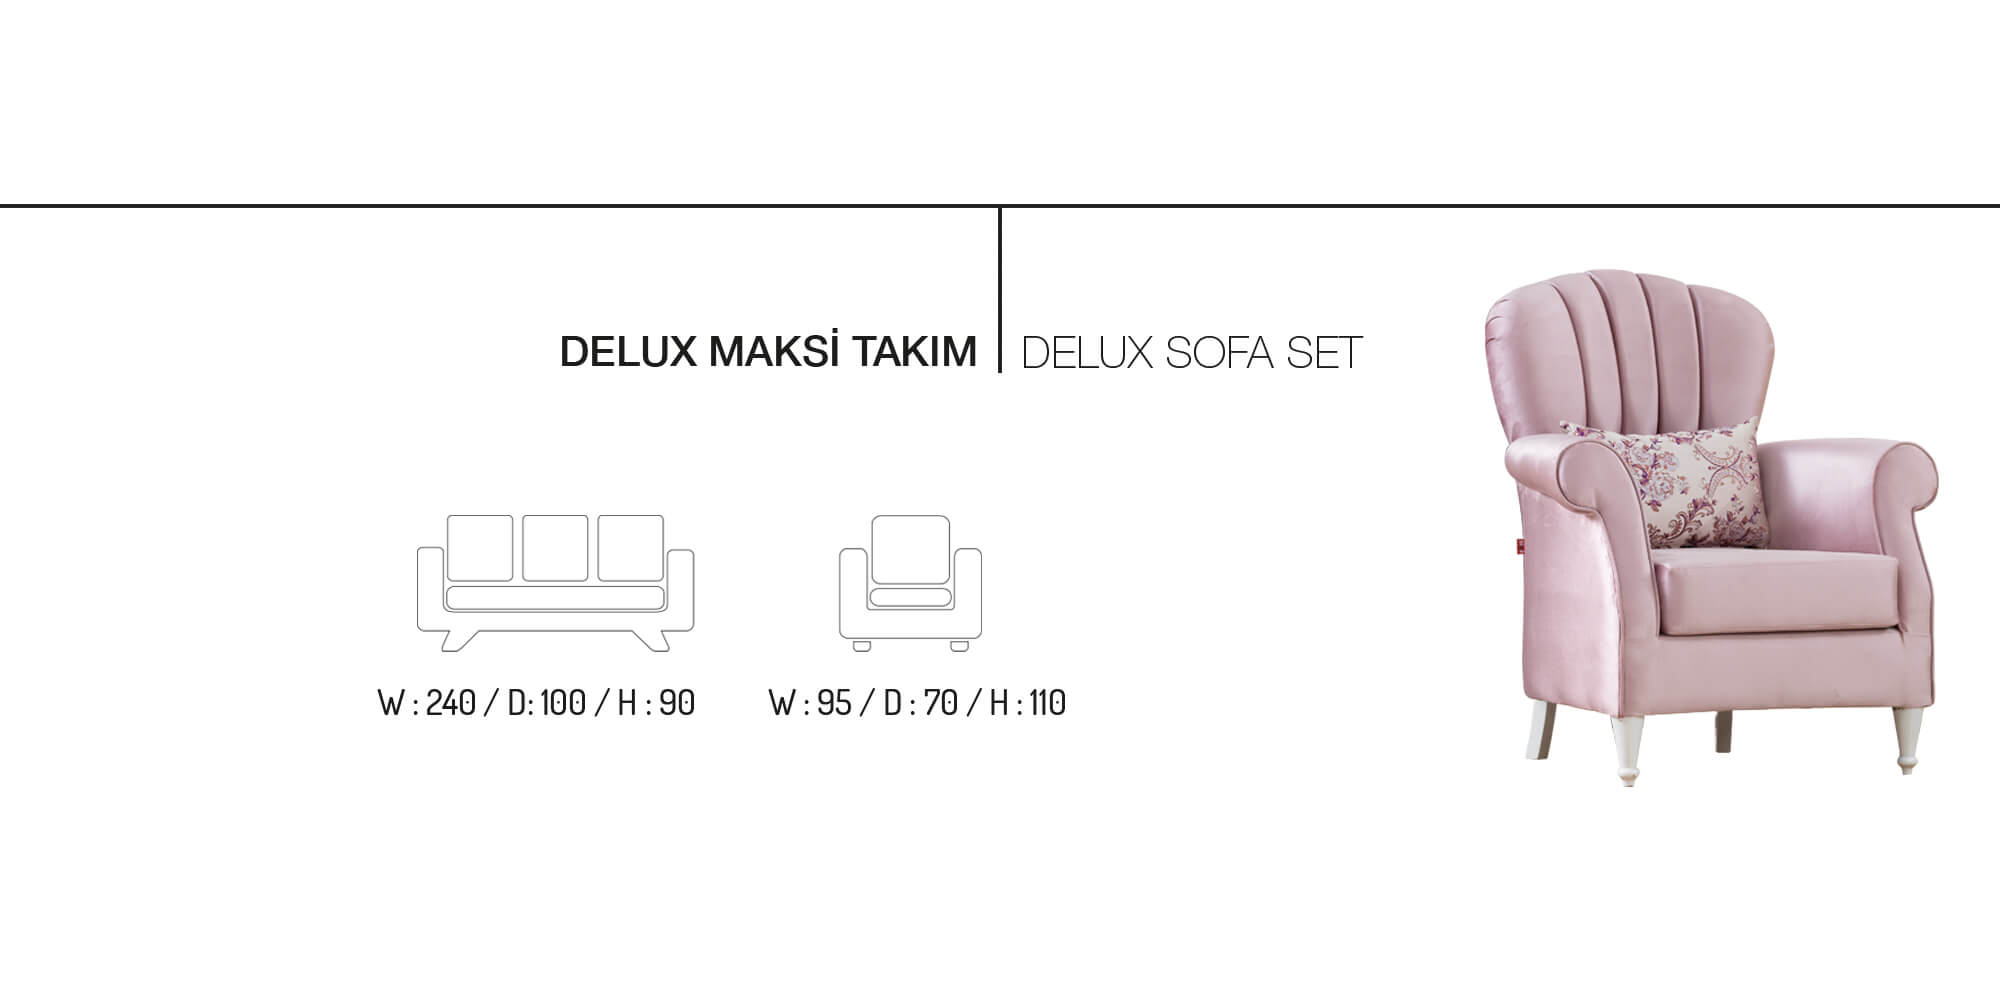 prenses-deluxe-sofa-set-4